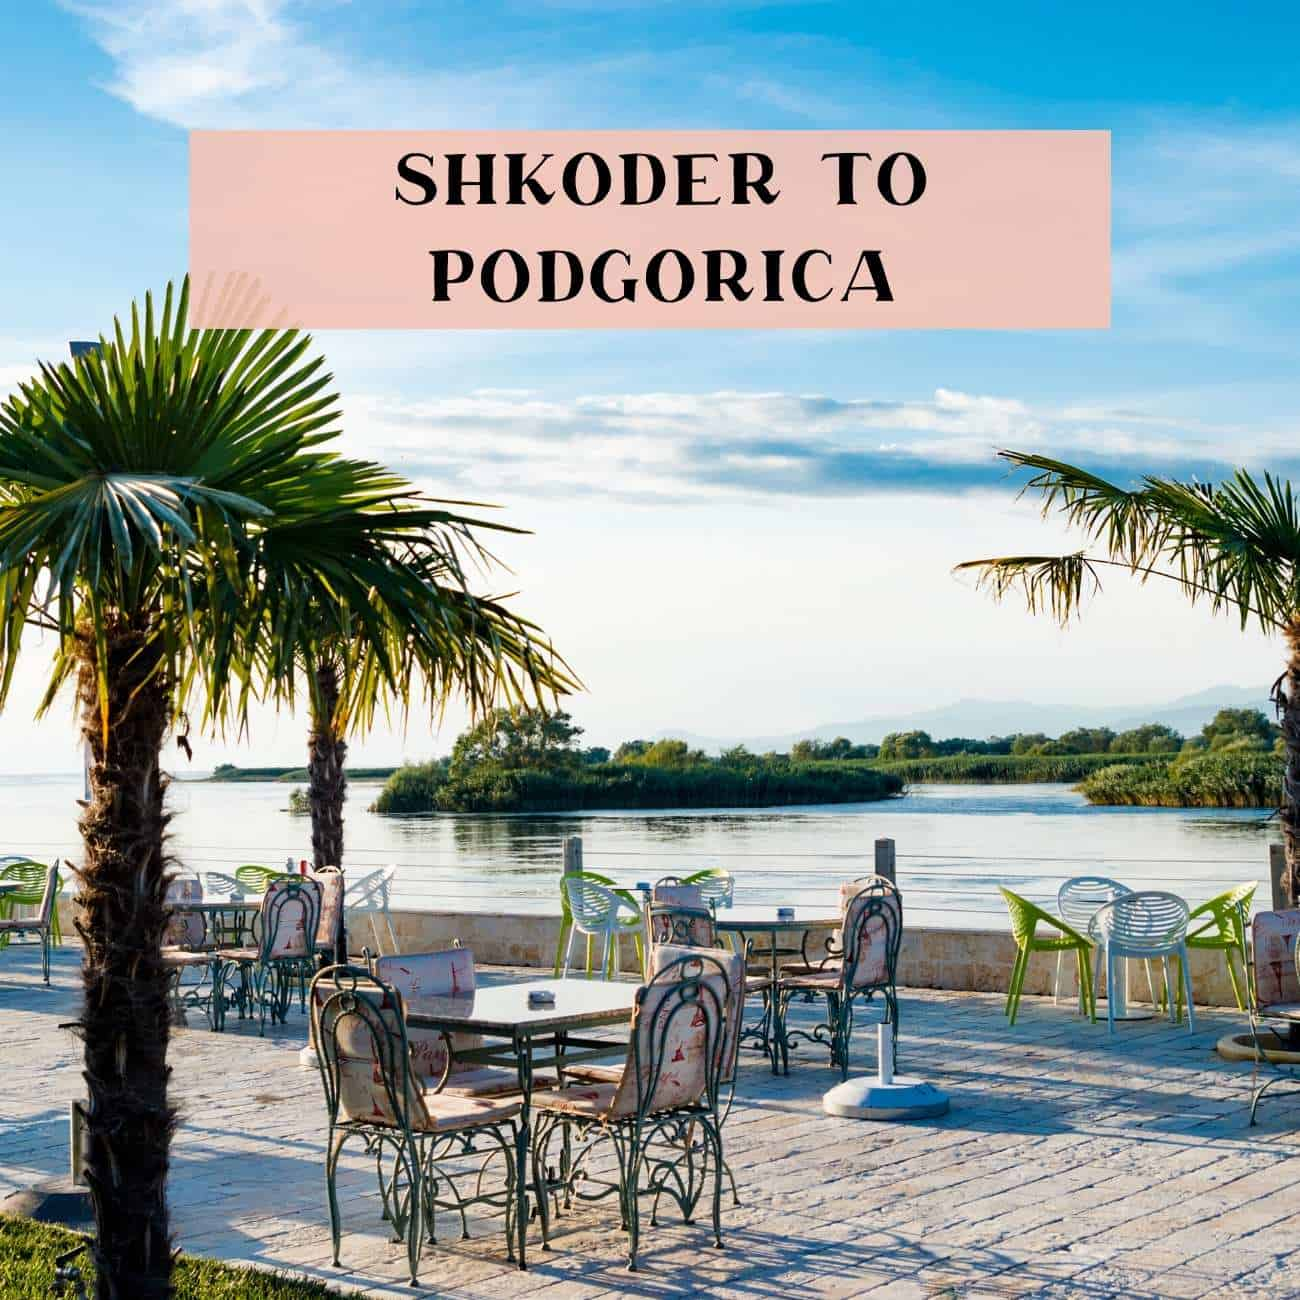 Bus from Shkoder to Podgorica